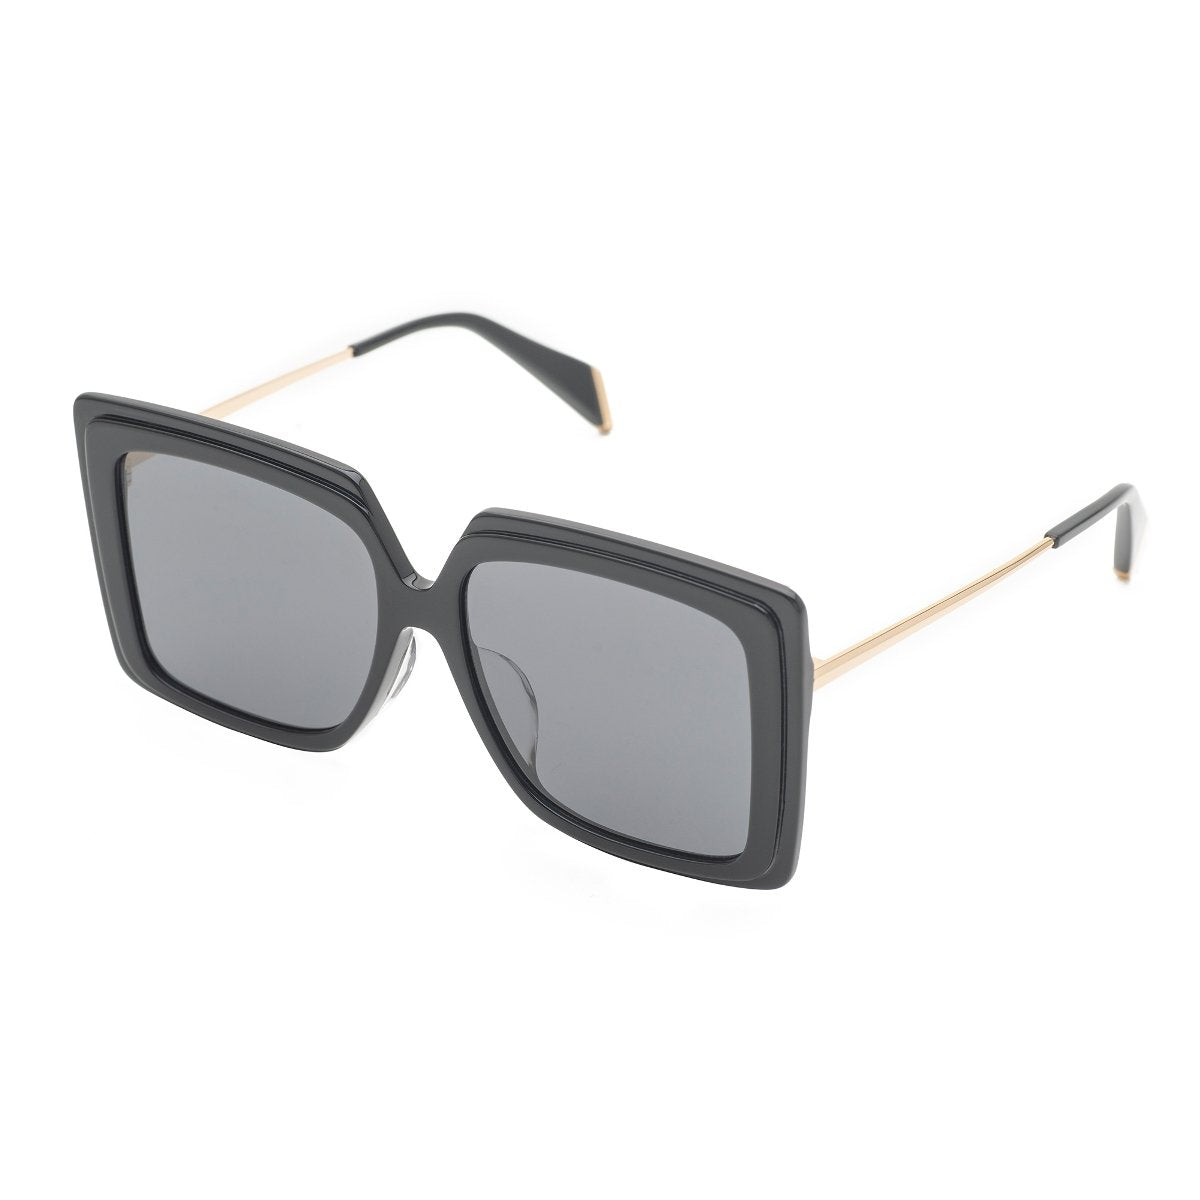 Couldn't Care Less | Shiny Black Oversize Square sunglasses | Boyish | REVÉ by RENÉ